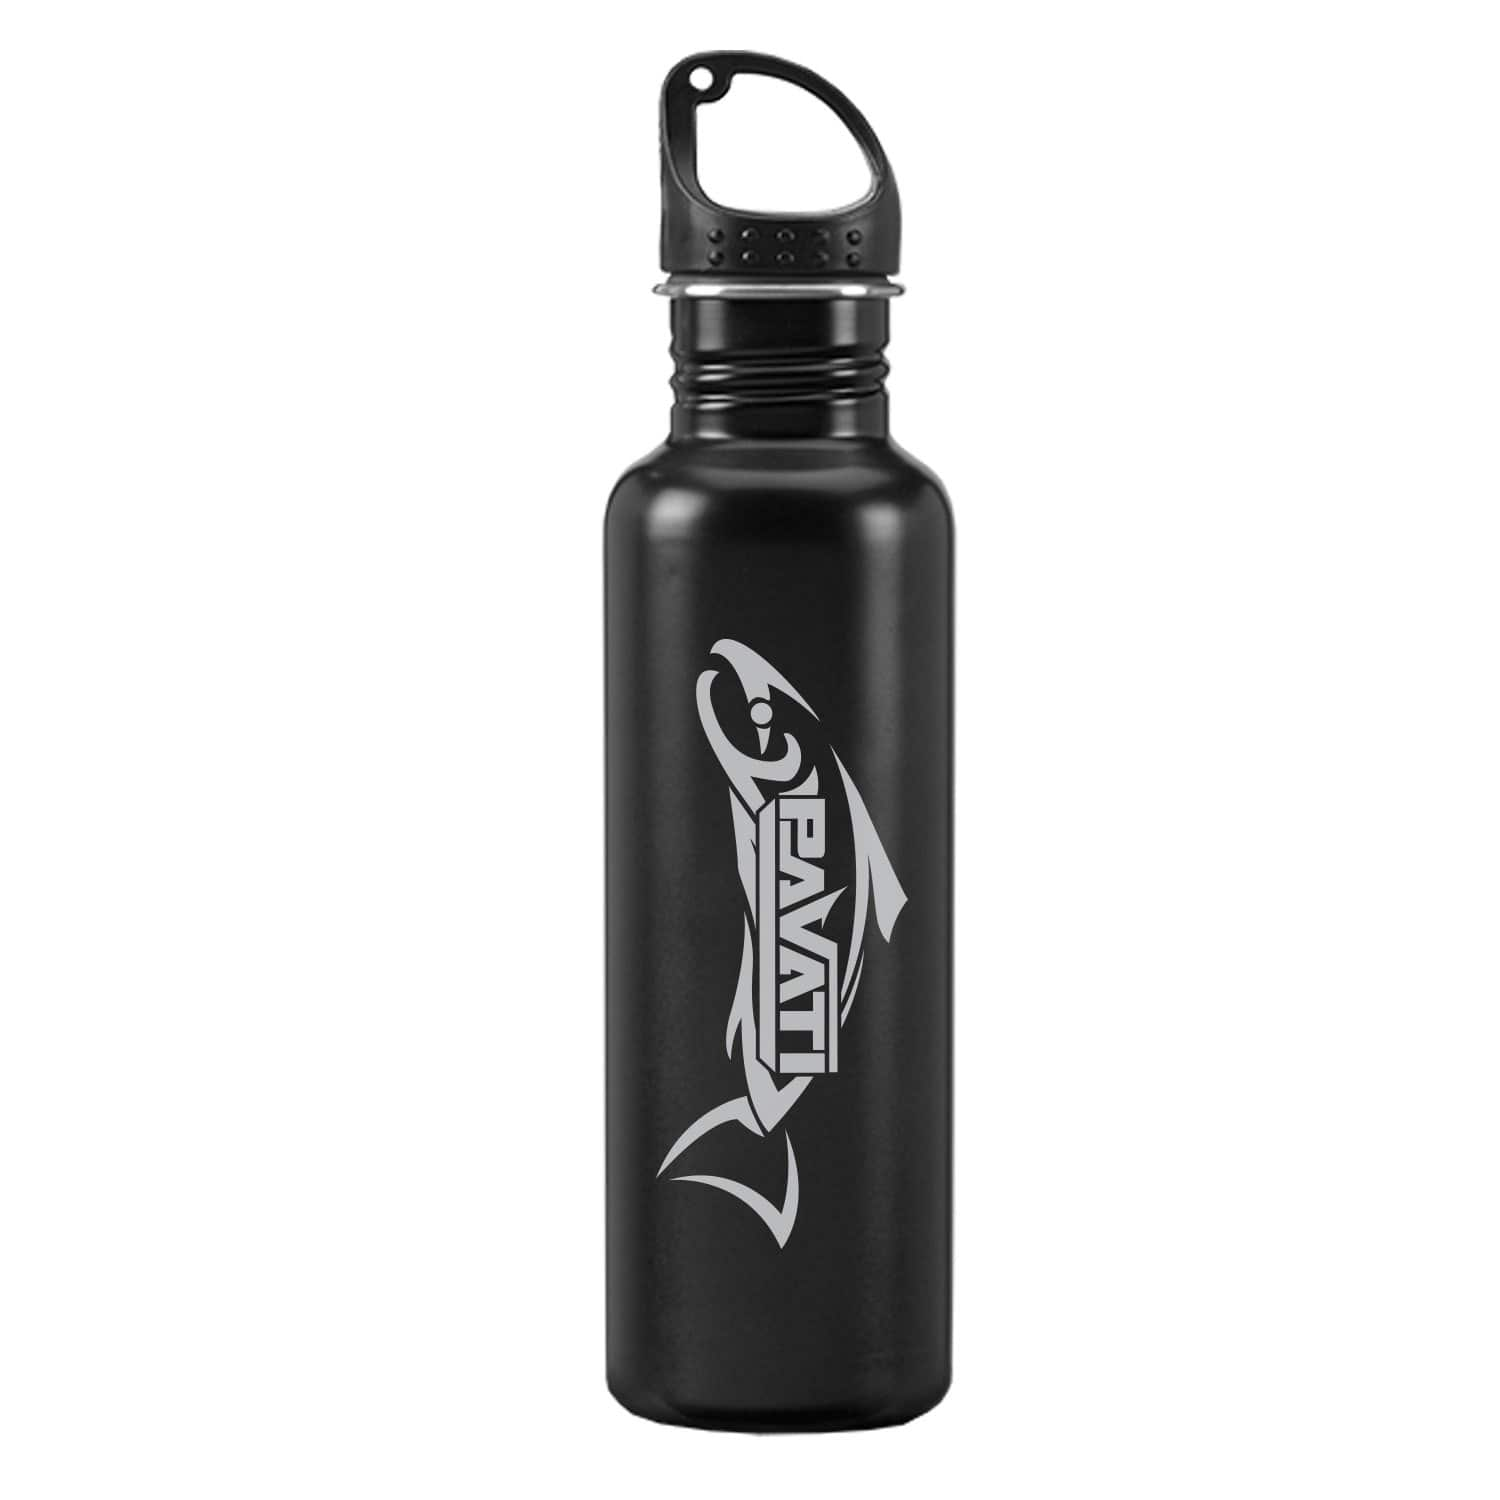 Pavati Wake Boats Product: Stainless Steel Water Bottle (25oz)